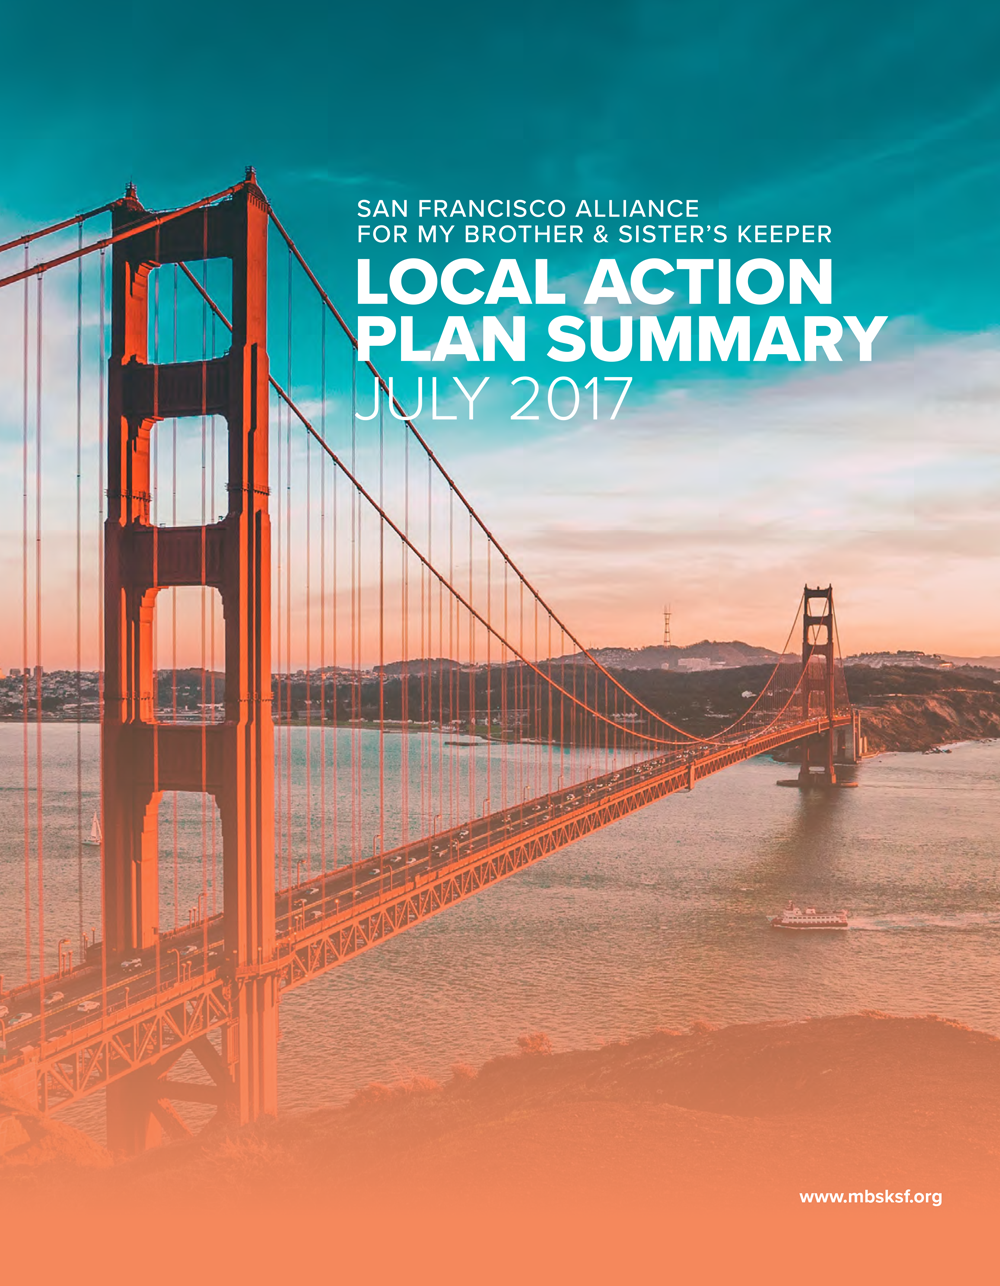 SF Alliance for My Brother & Sister's Keeper - 2017 Local Action Plan Summary